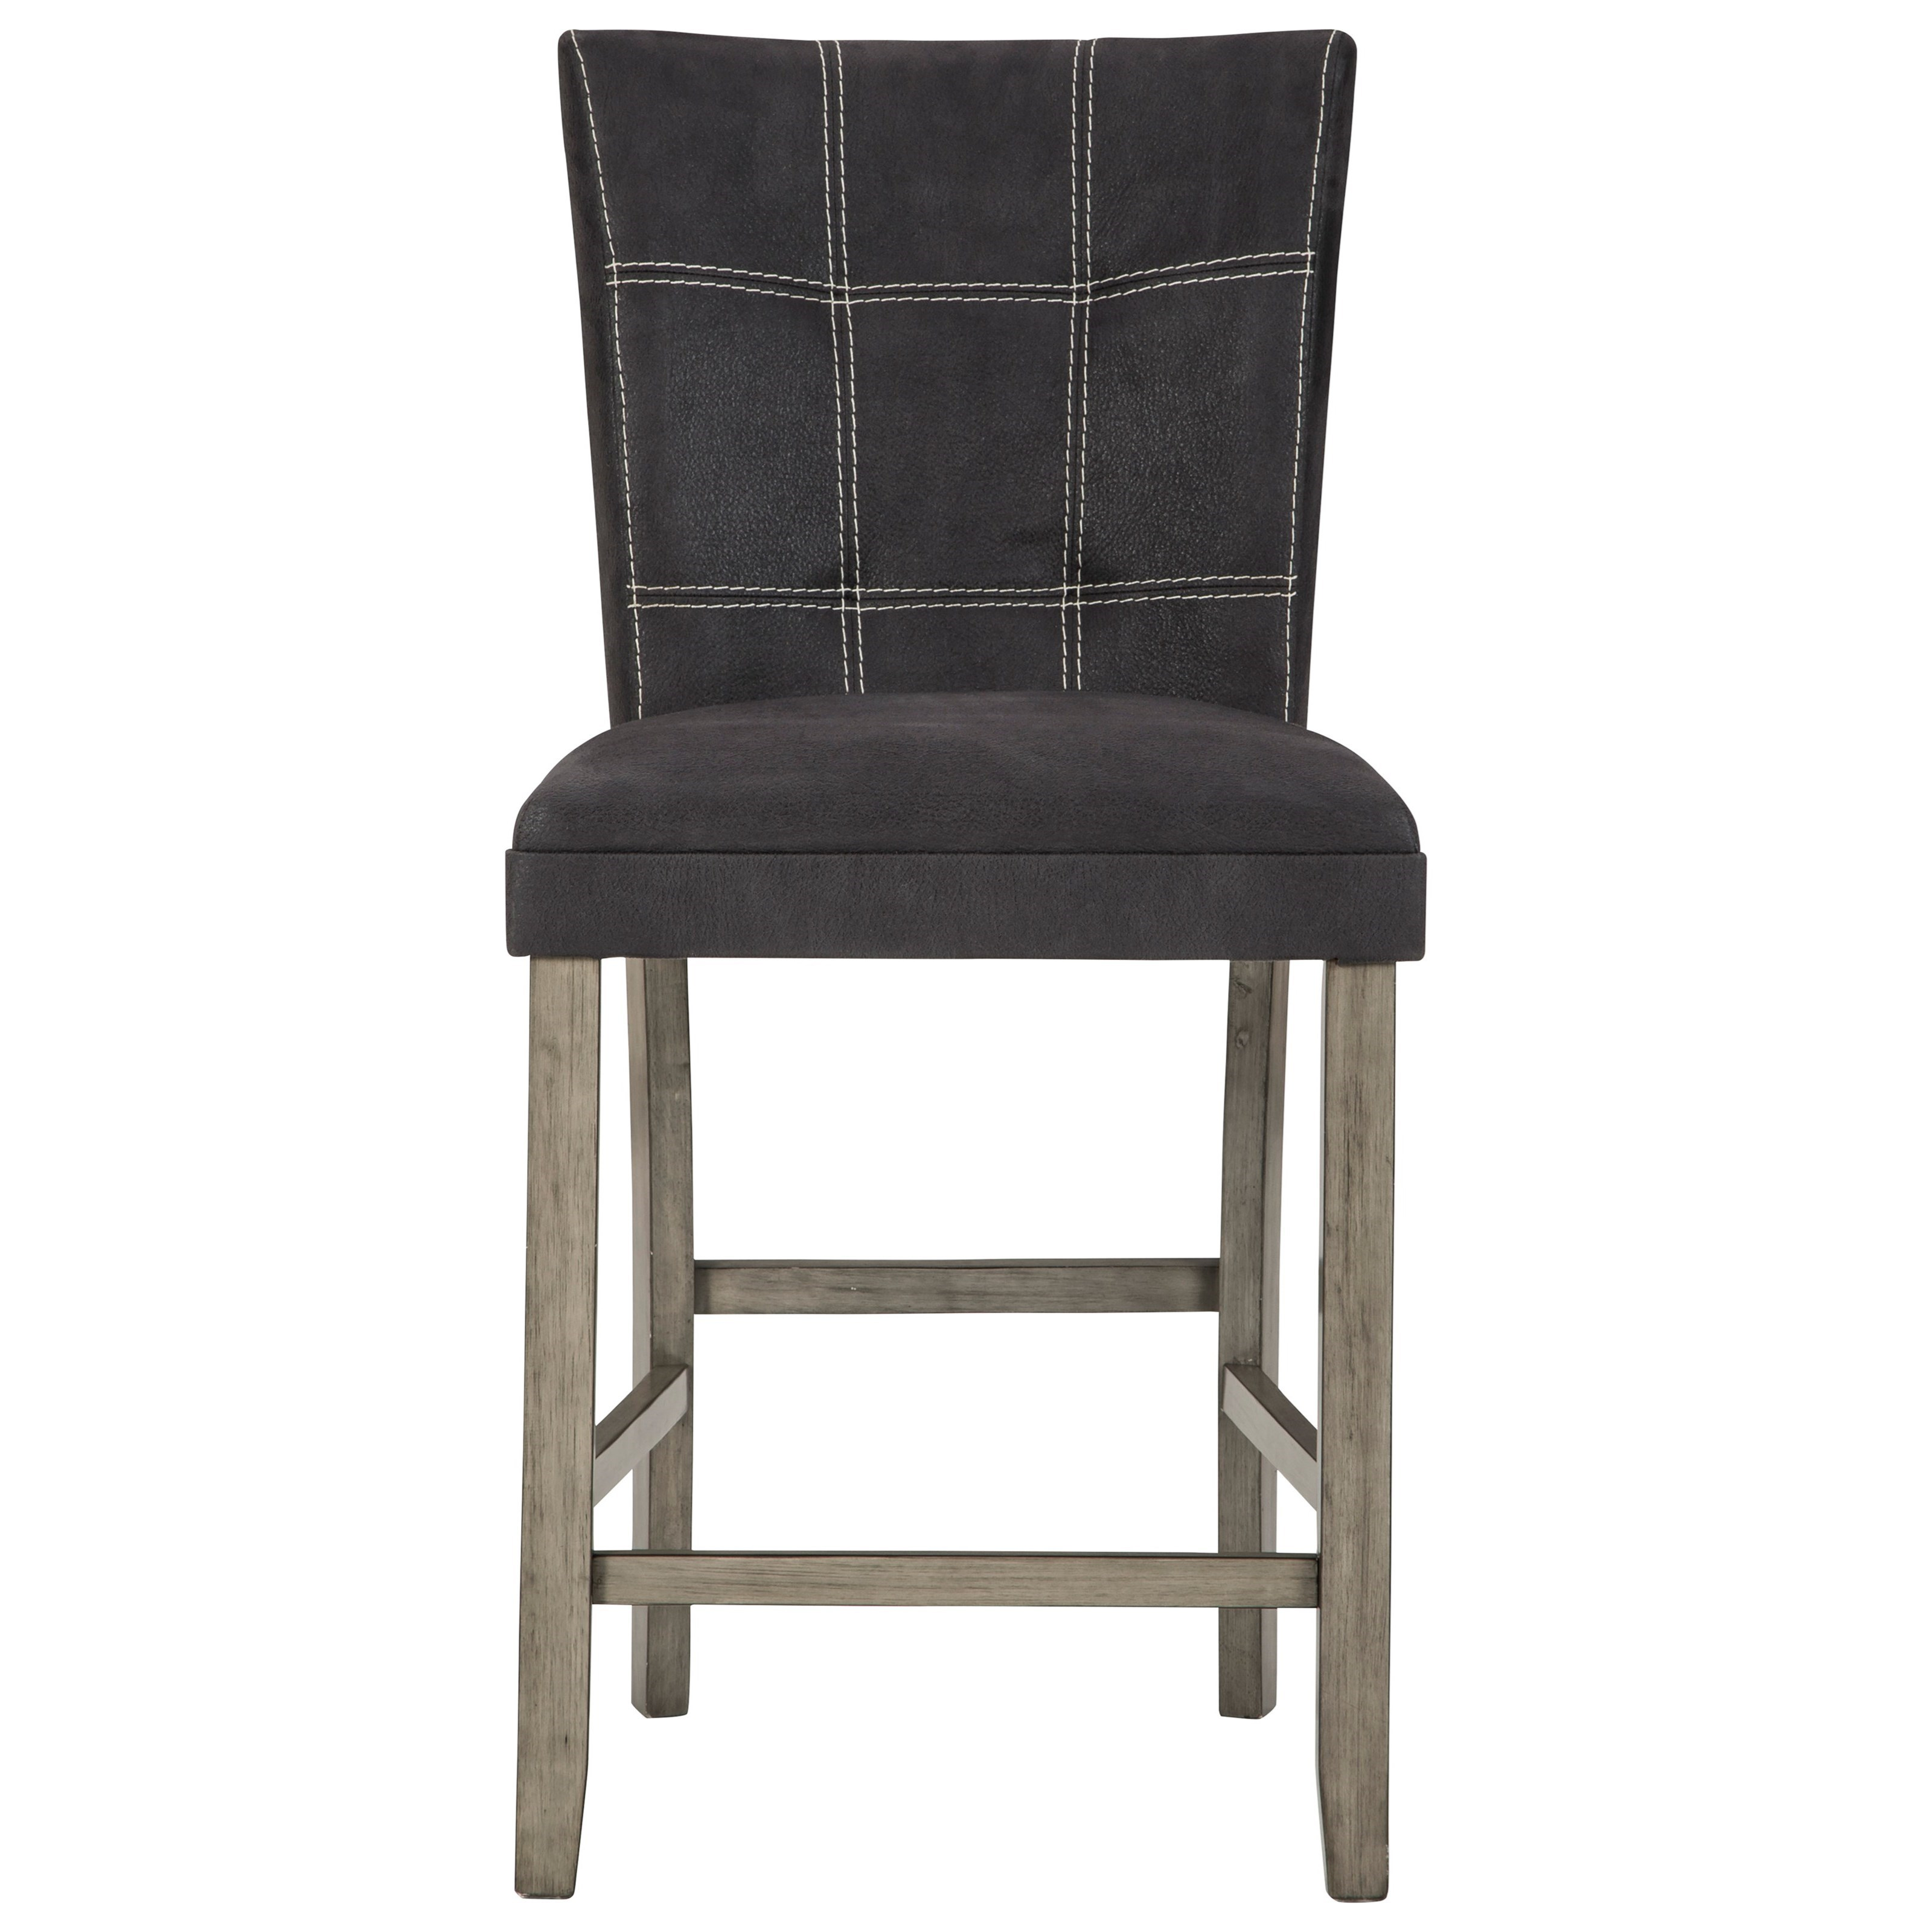 Dontally Upholstered Barstool by Benchcraft at Walker's Furniture